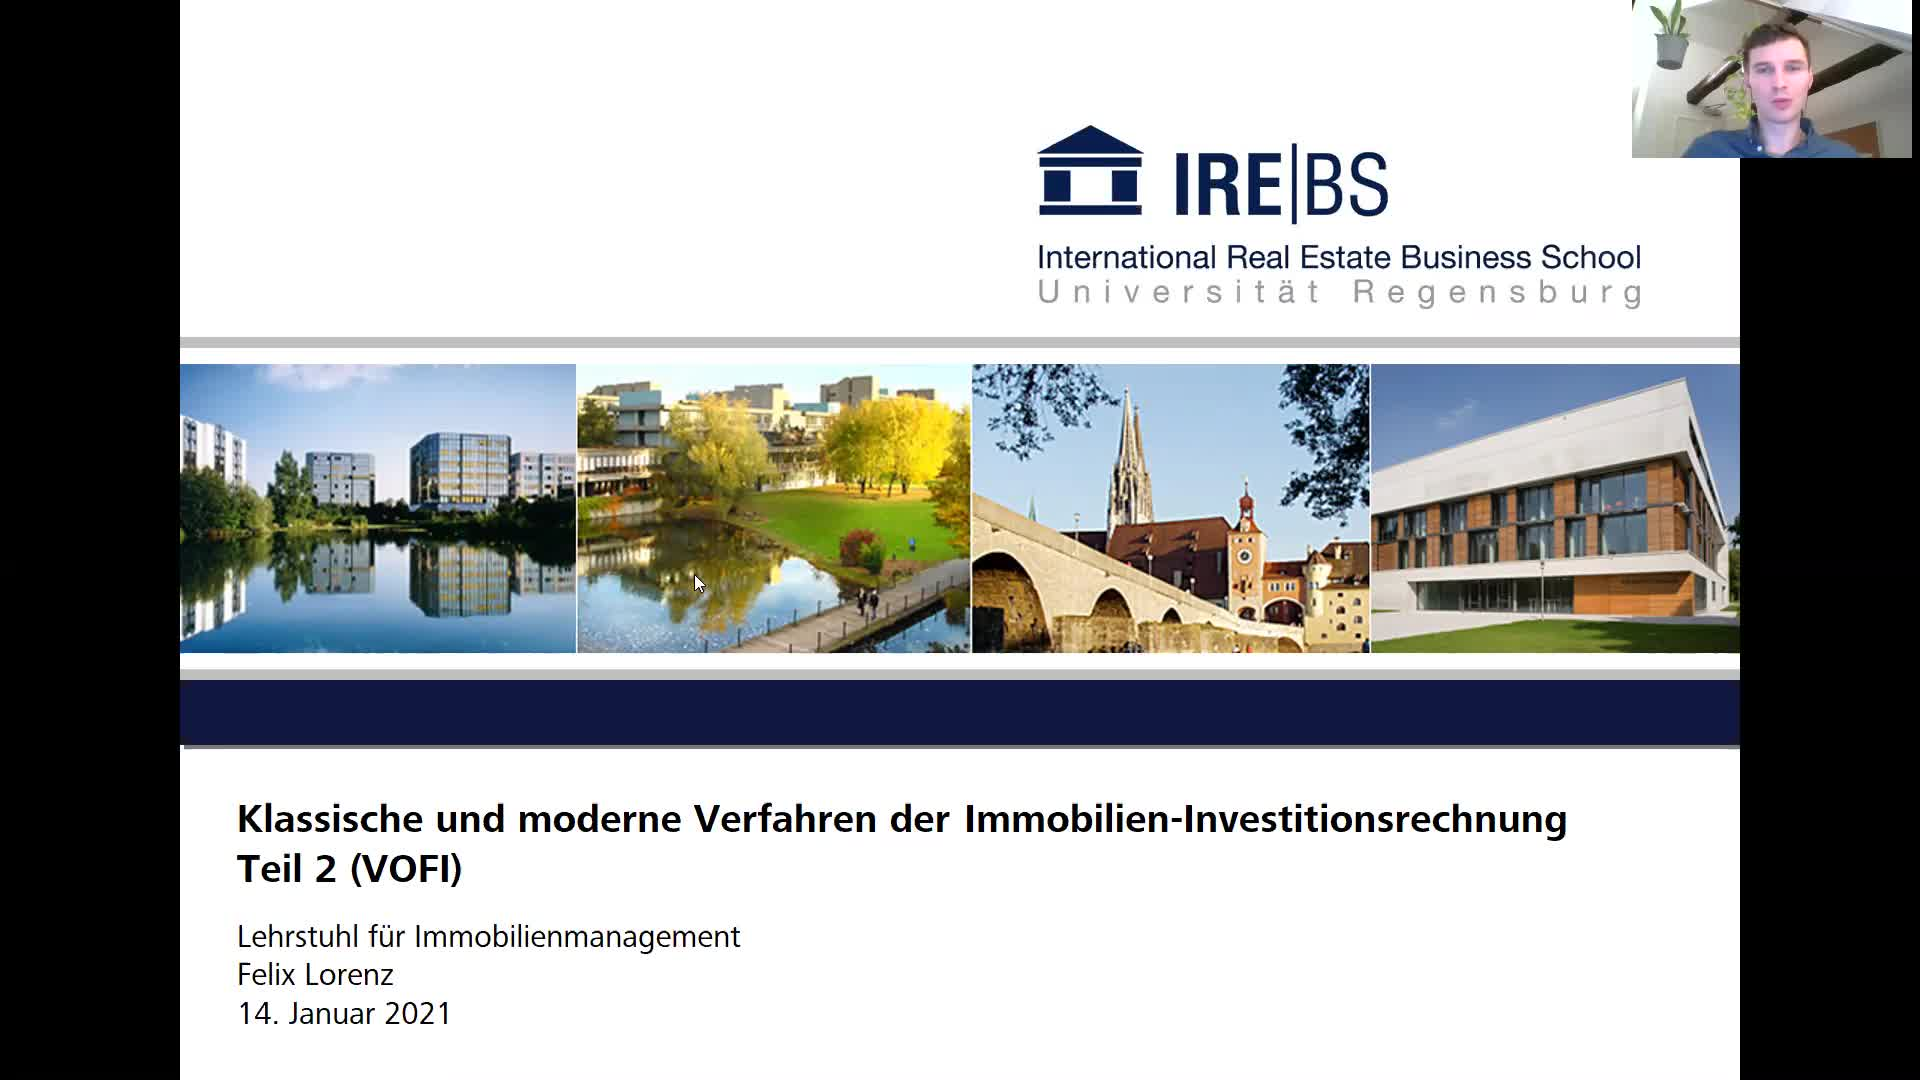 Immobilien-Investitionsrechnung - Teil 2